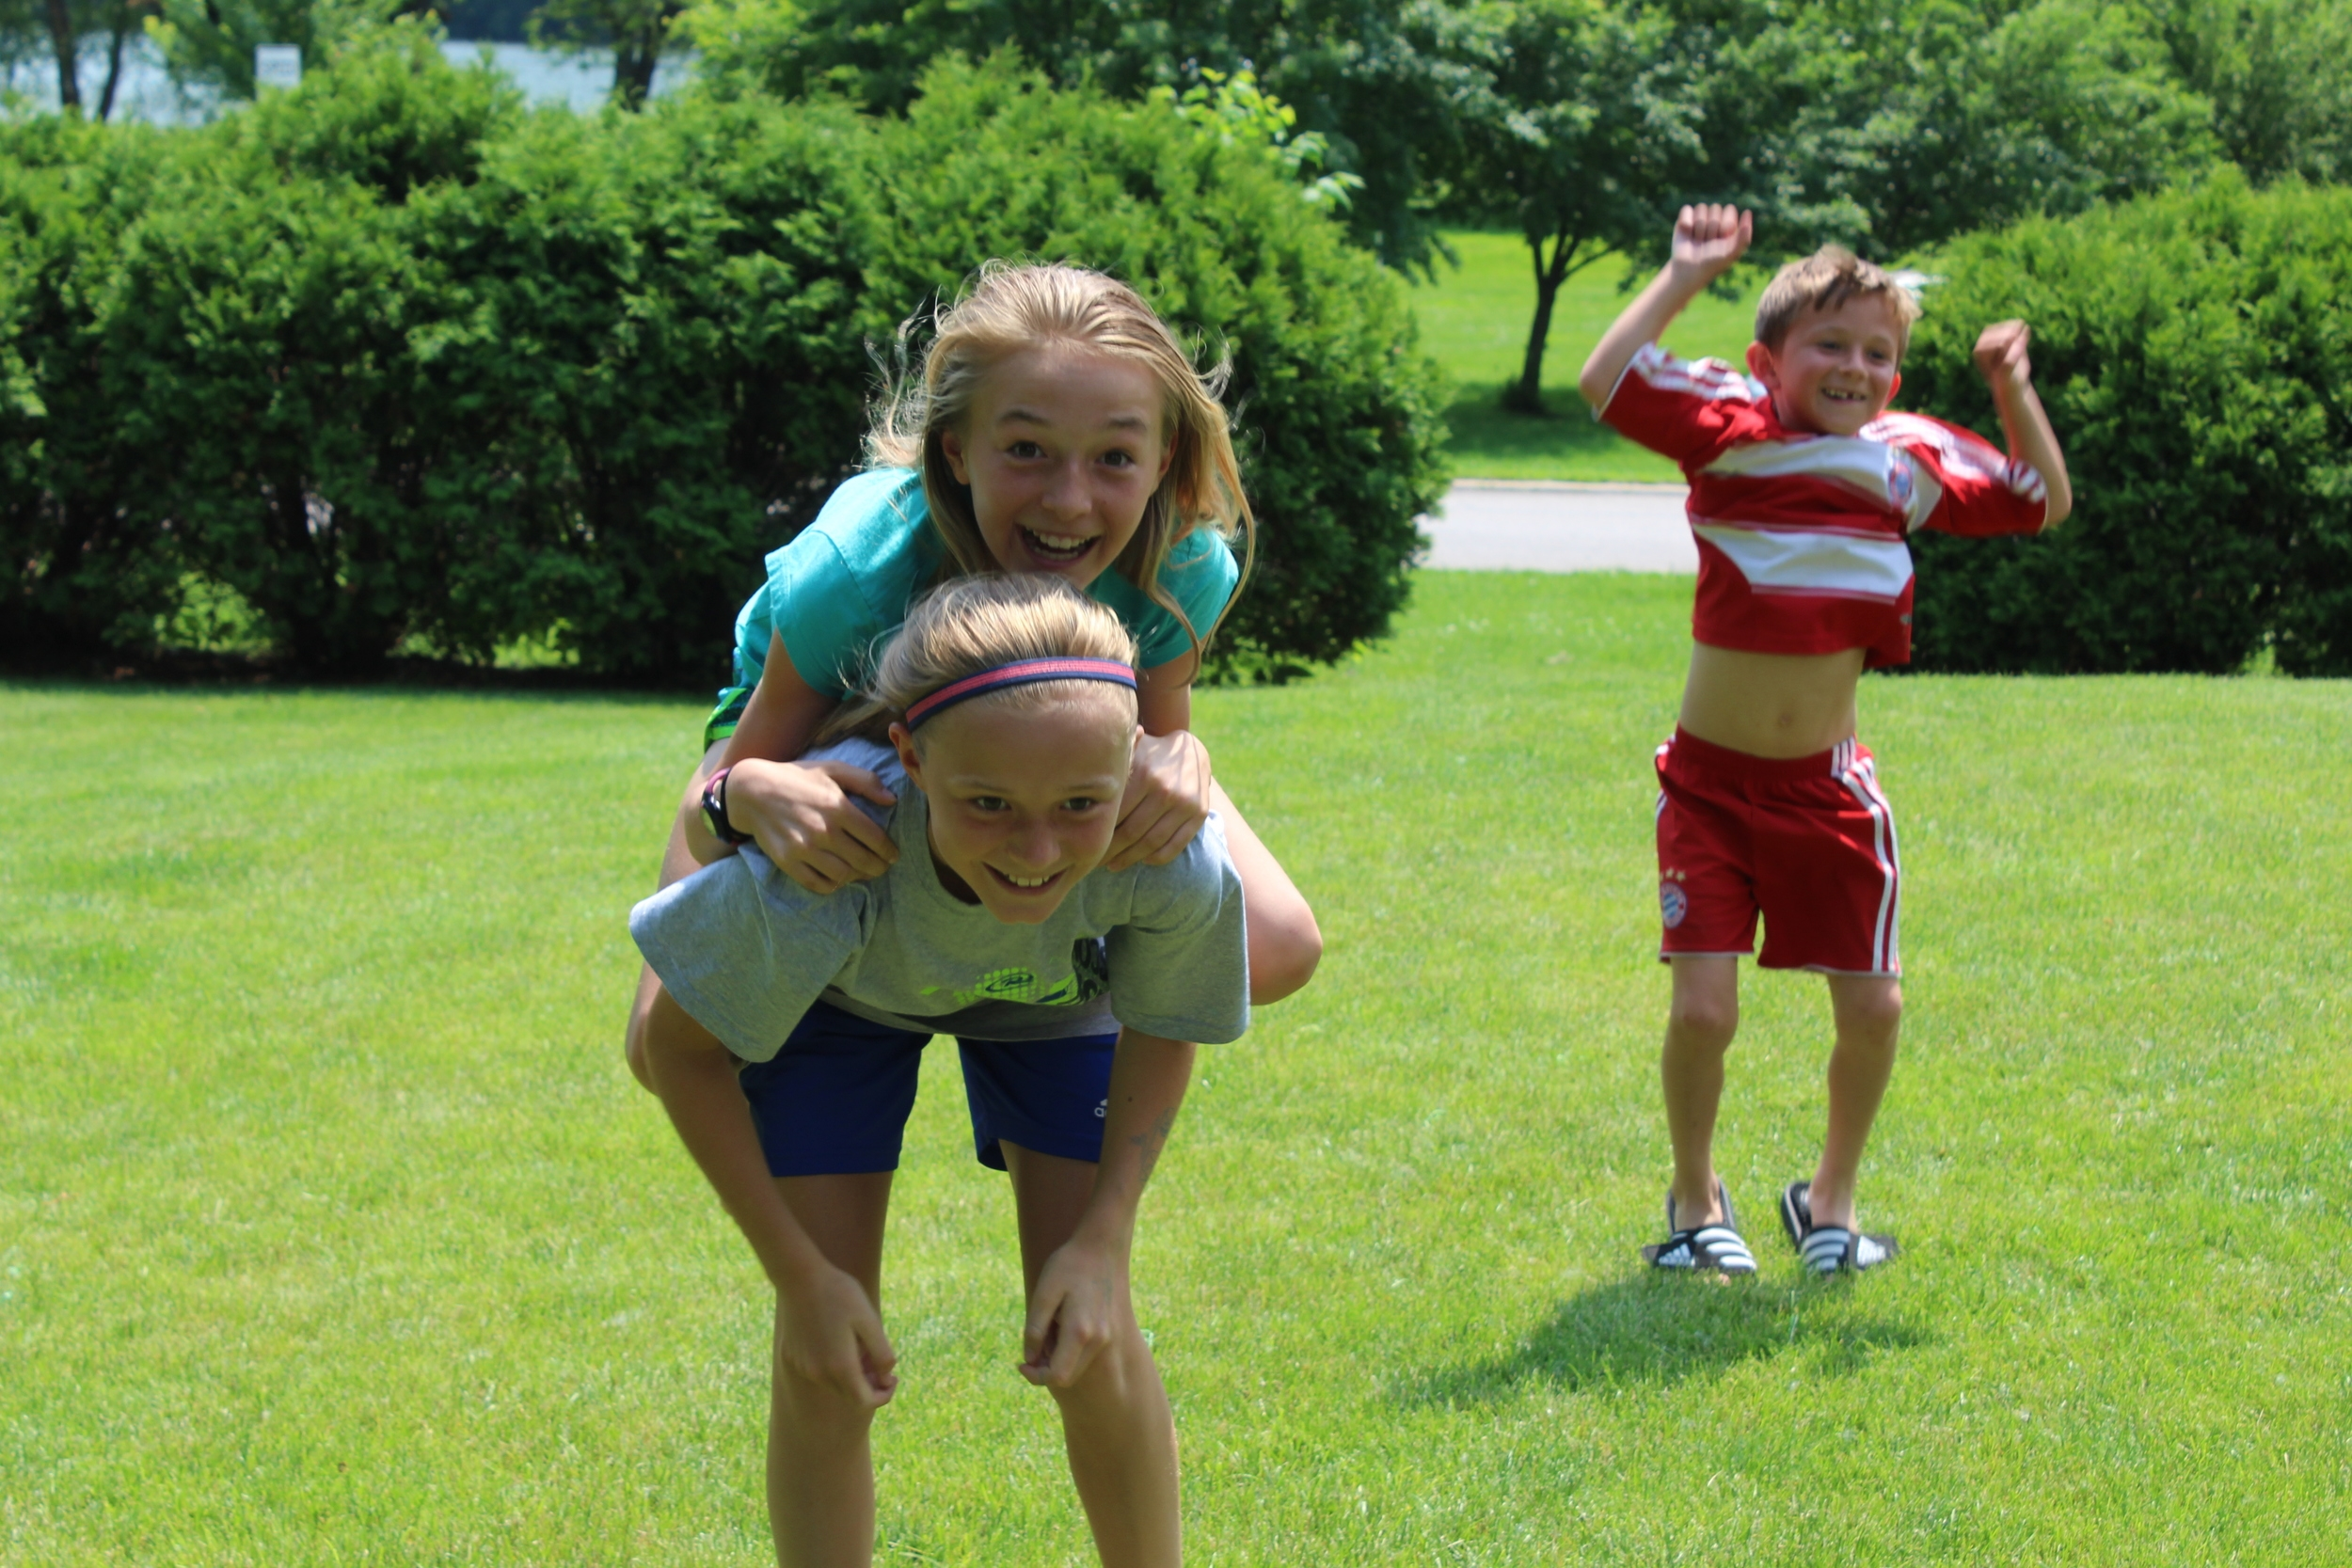 Lauren Ping gets a piggyback ride from her sister Lauren, while younger brother Jamison jumps in the background.